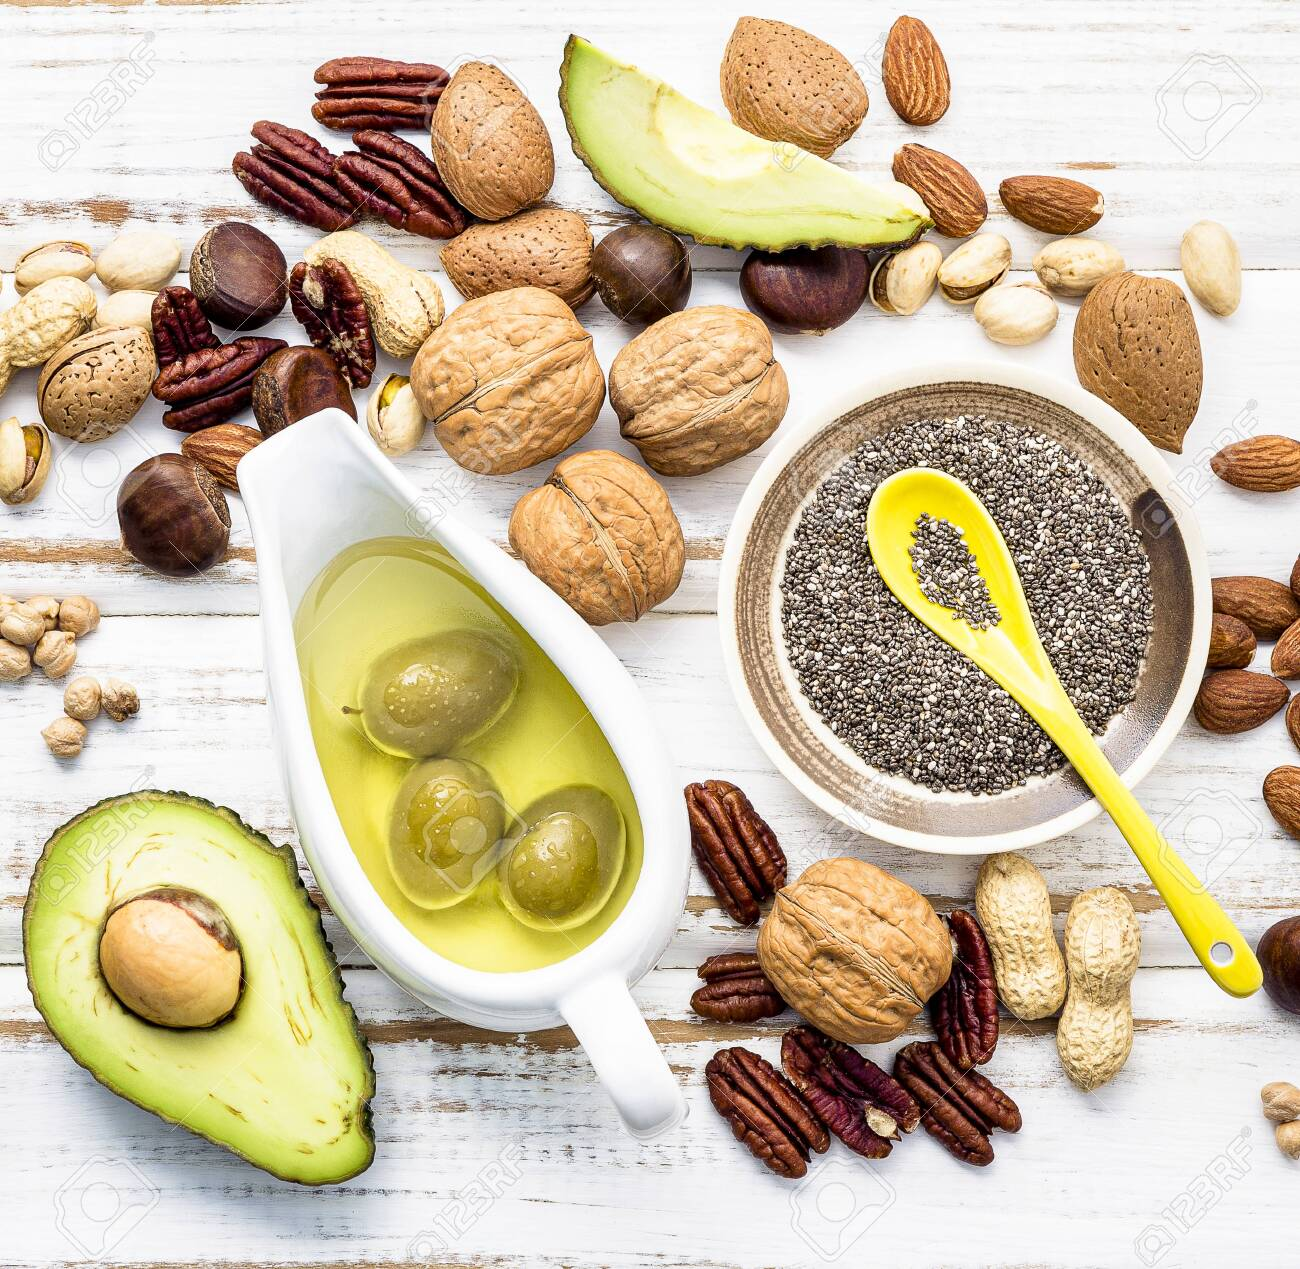 Selection food sources of omega 3 and unsaturated fats. - 128051604